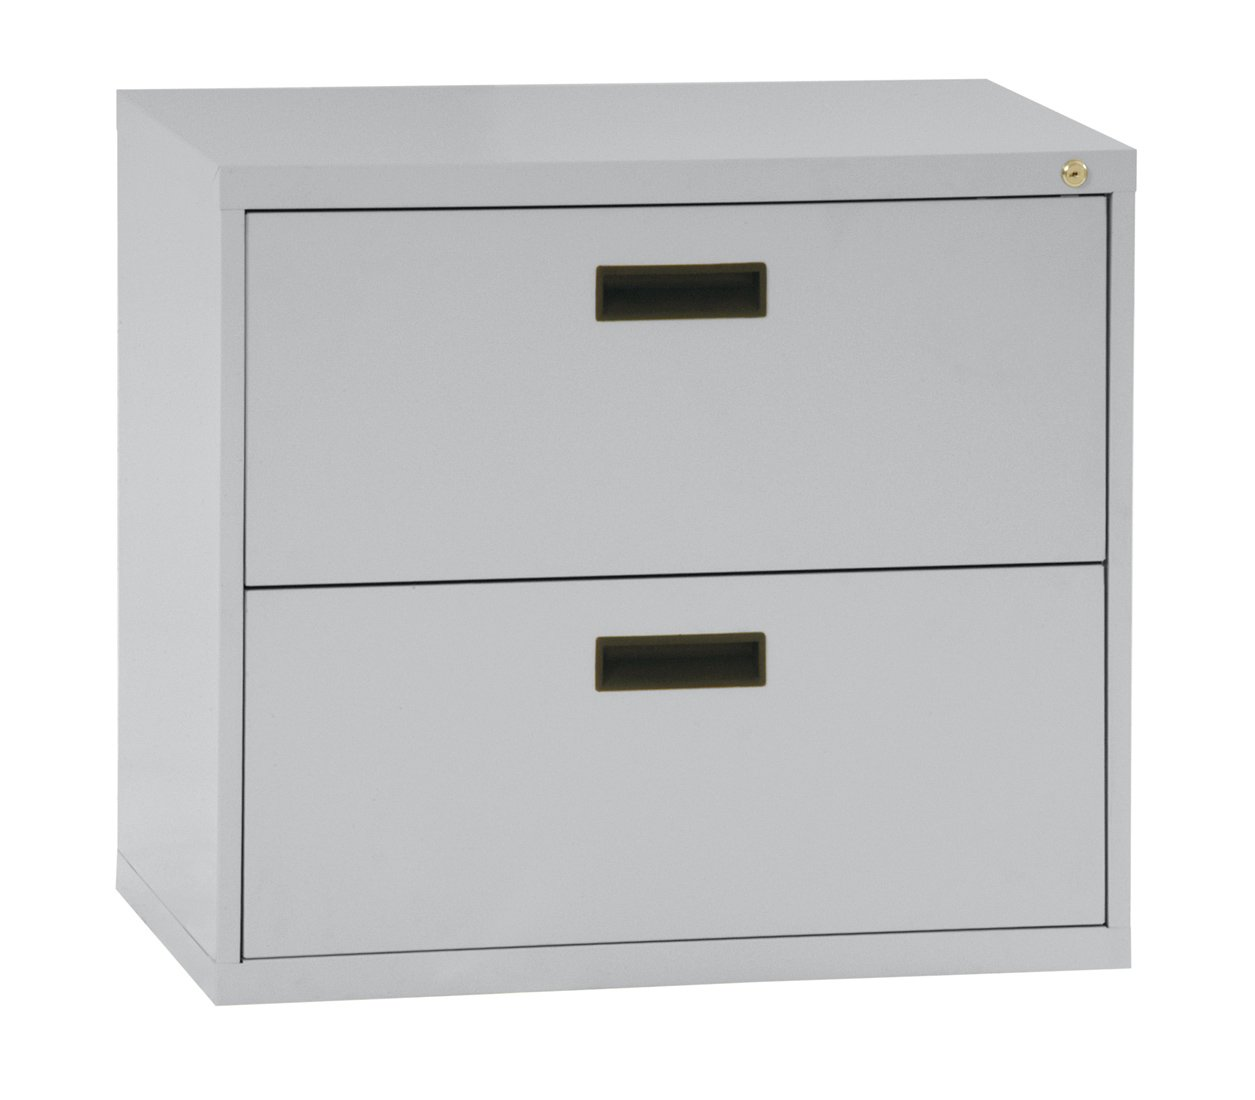 lateral file furniture cabinet boltz lat lightbox horizontal fcab steel moreview filecabinet drawer